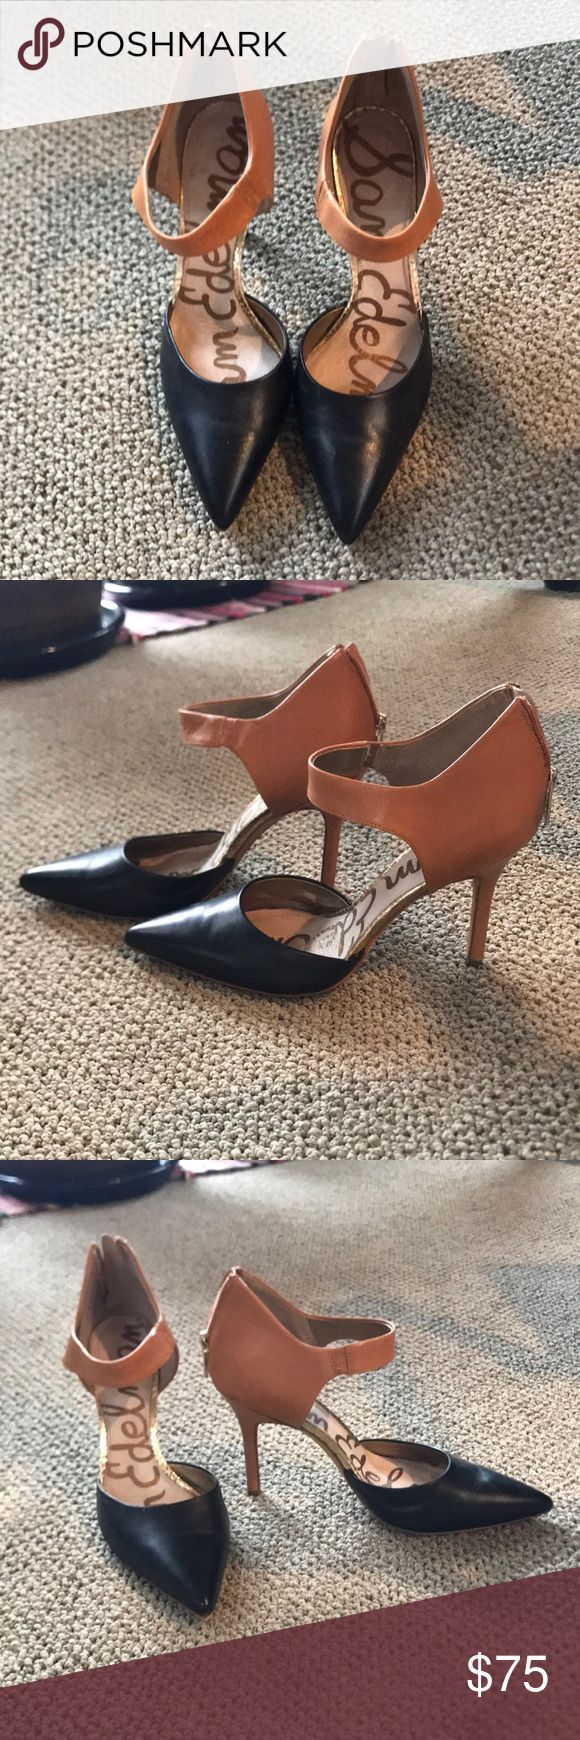 Sam Edelman heels Gently worn Sam Edelman heels! So cute and sad to part with them but just haven't been wearing them enough Sam Edelman Shoes Heels